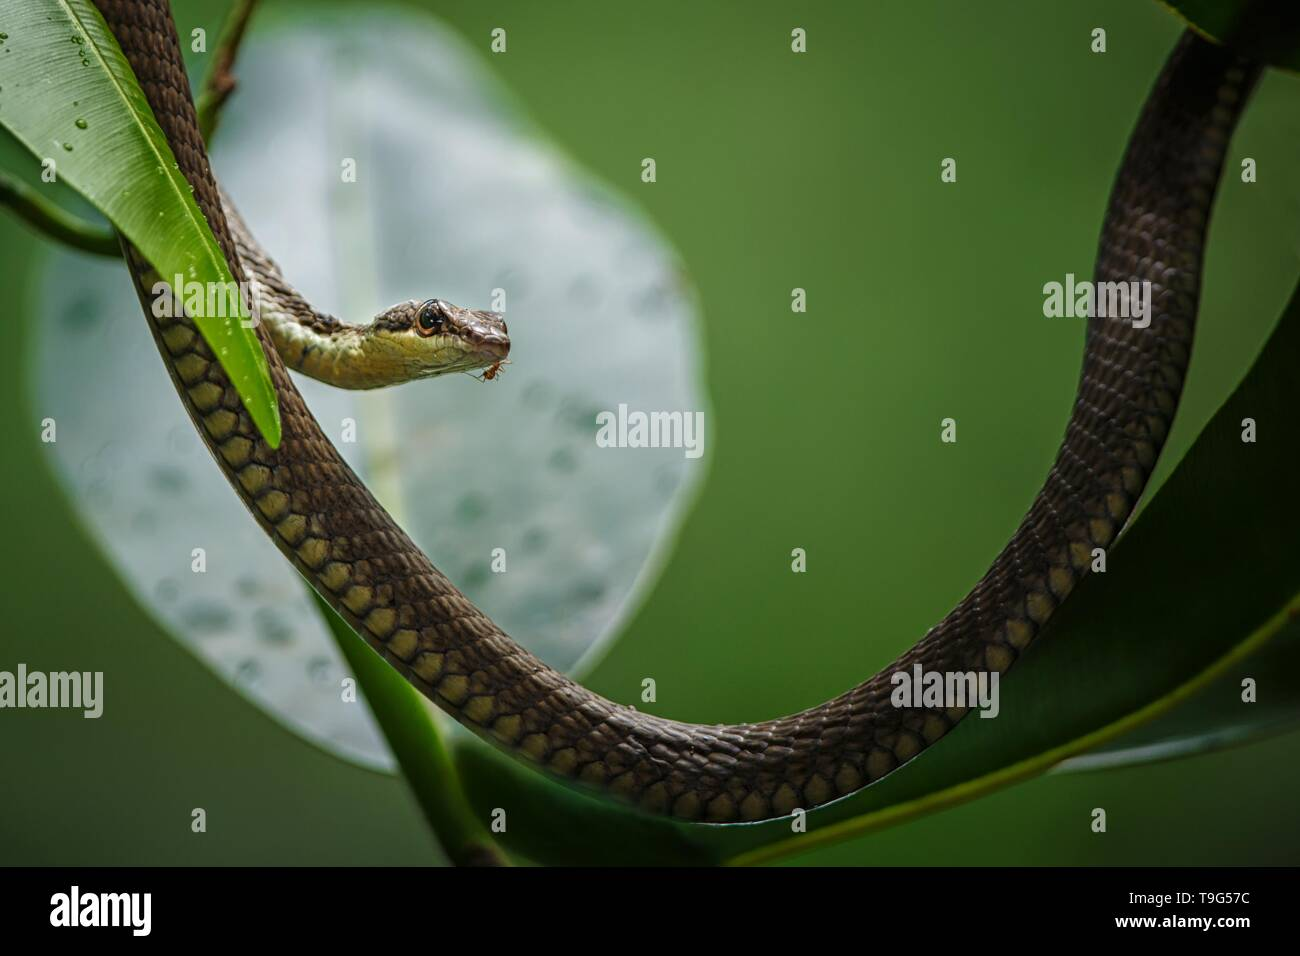 The common snake on the tree in Tangkoko National Park, Sulawesi, , exotic adventure trip in Southeast Asia - Stock Image